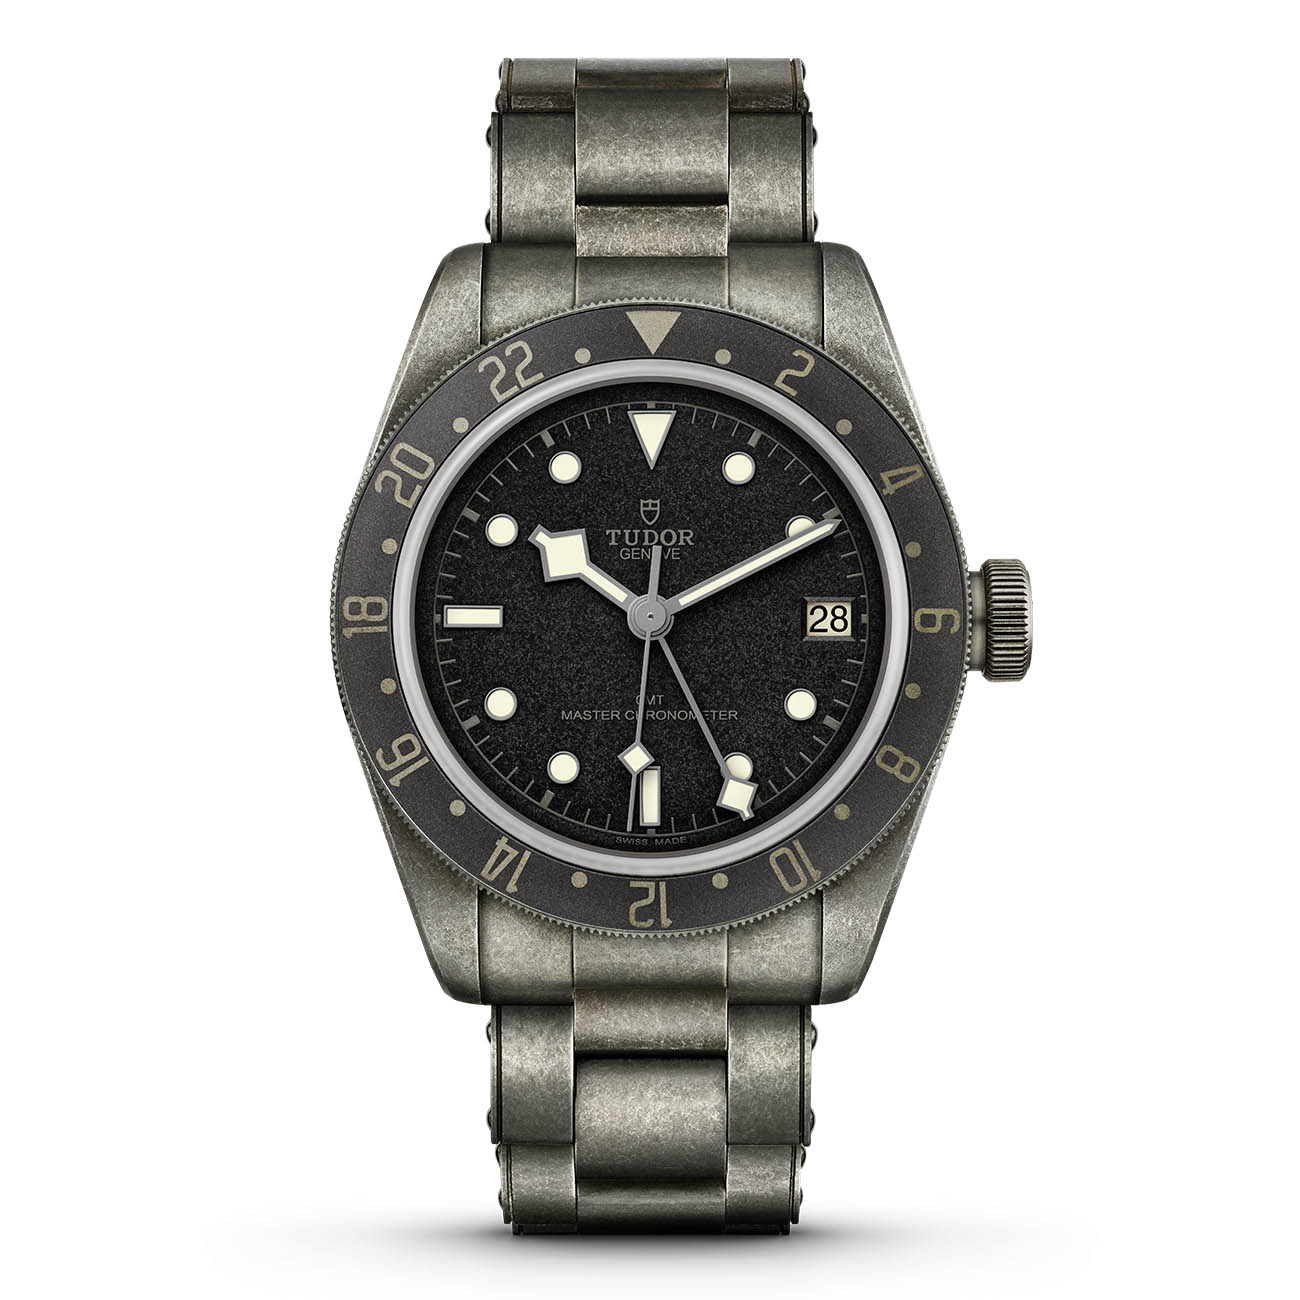 Tudor Only Watch 2021